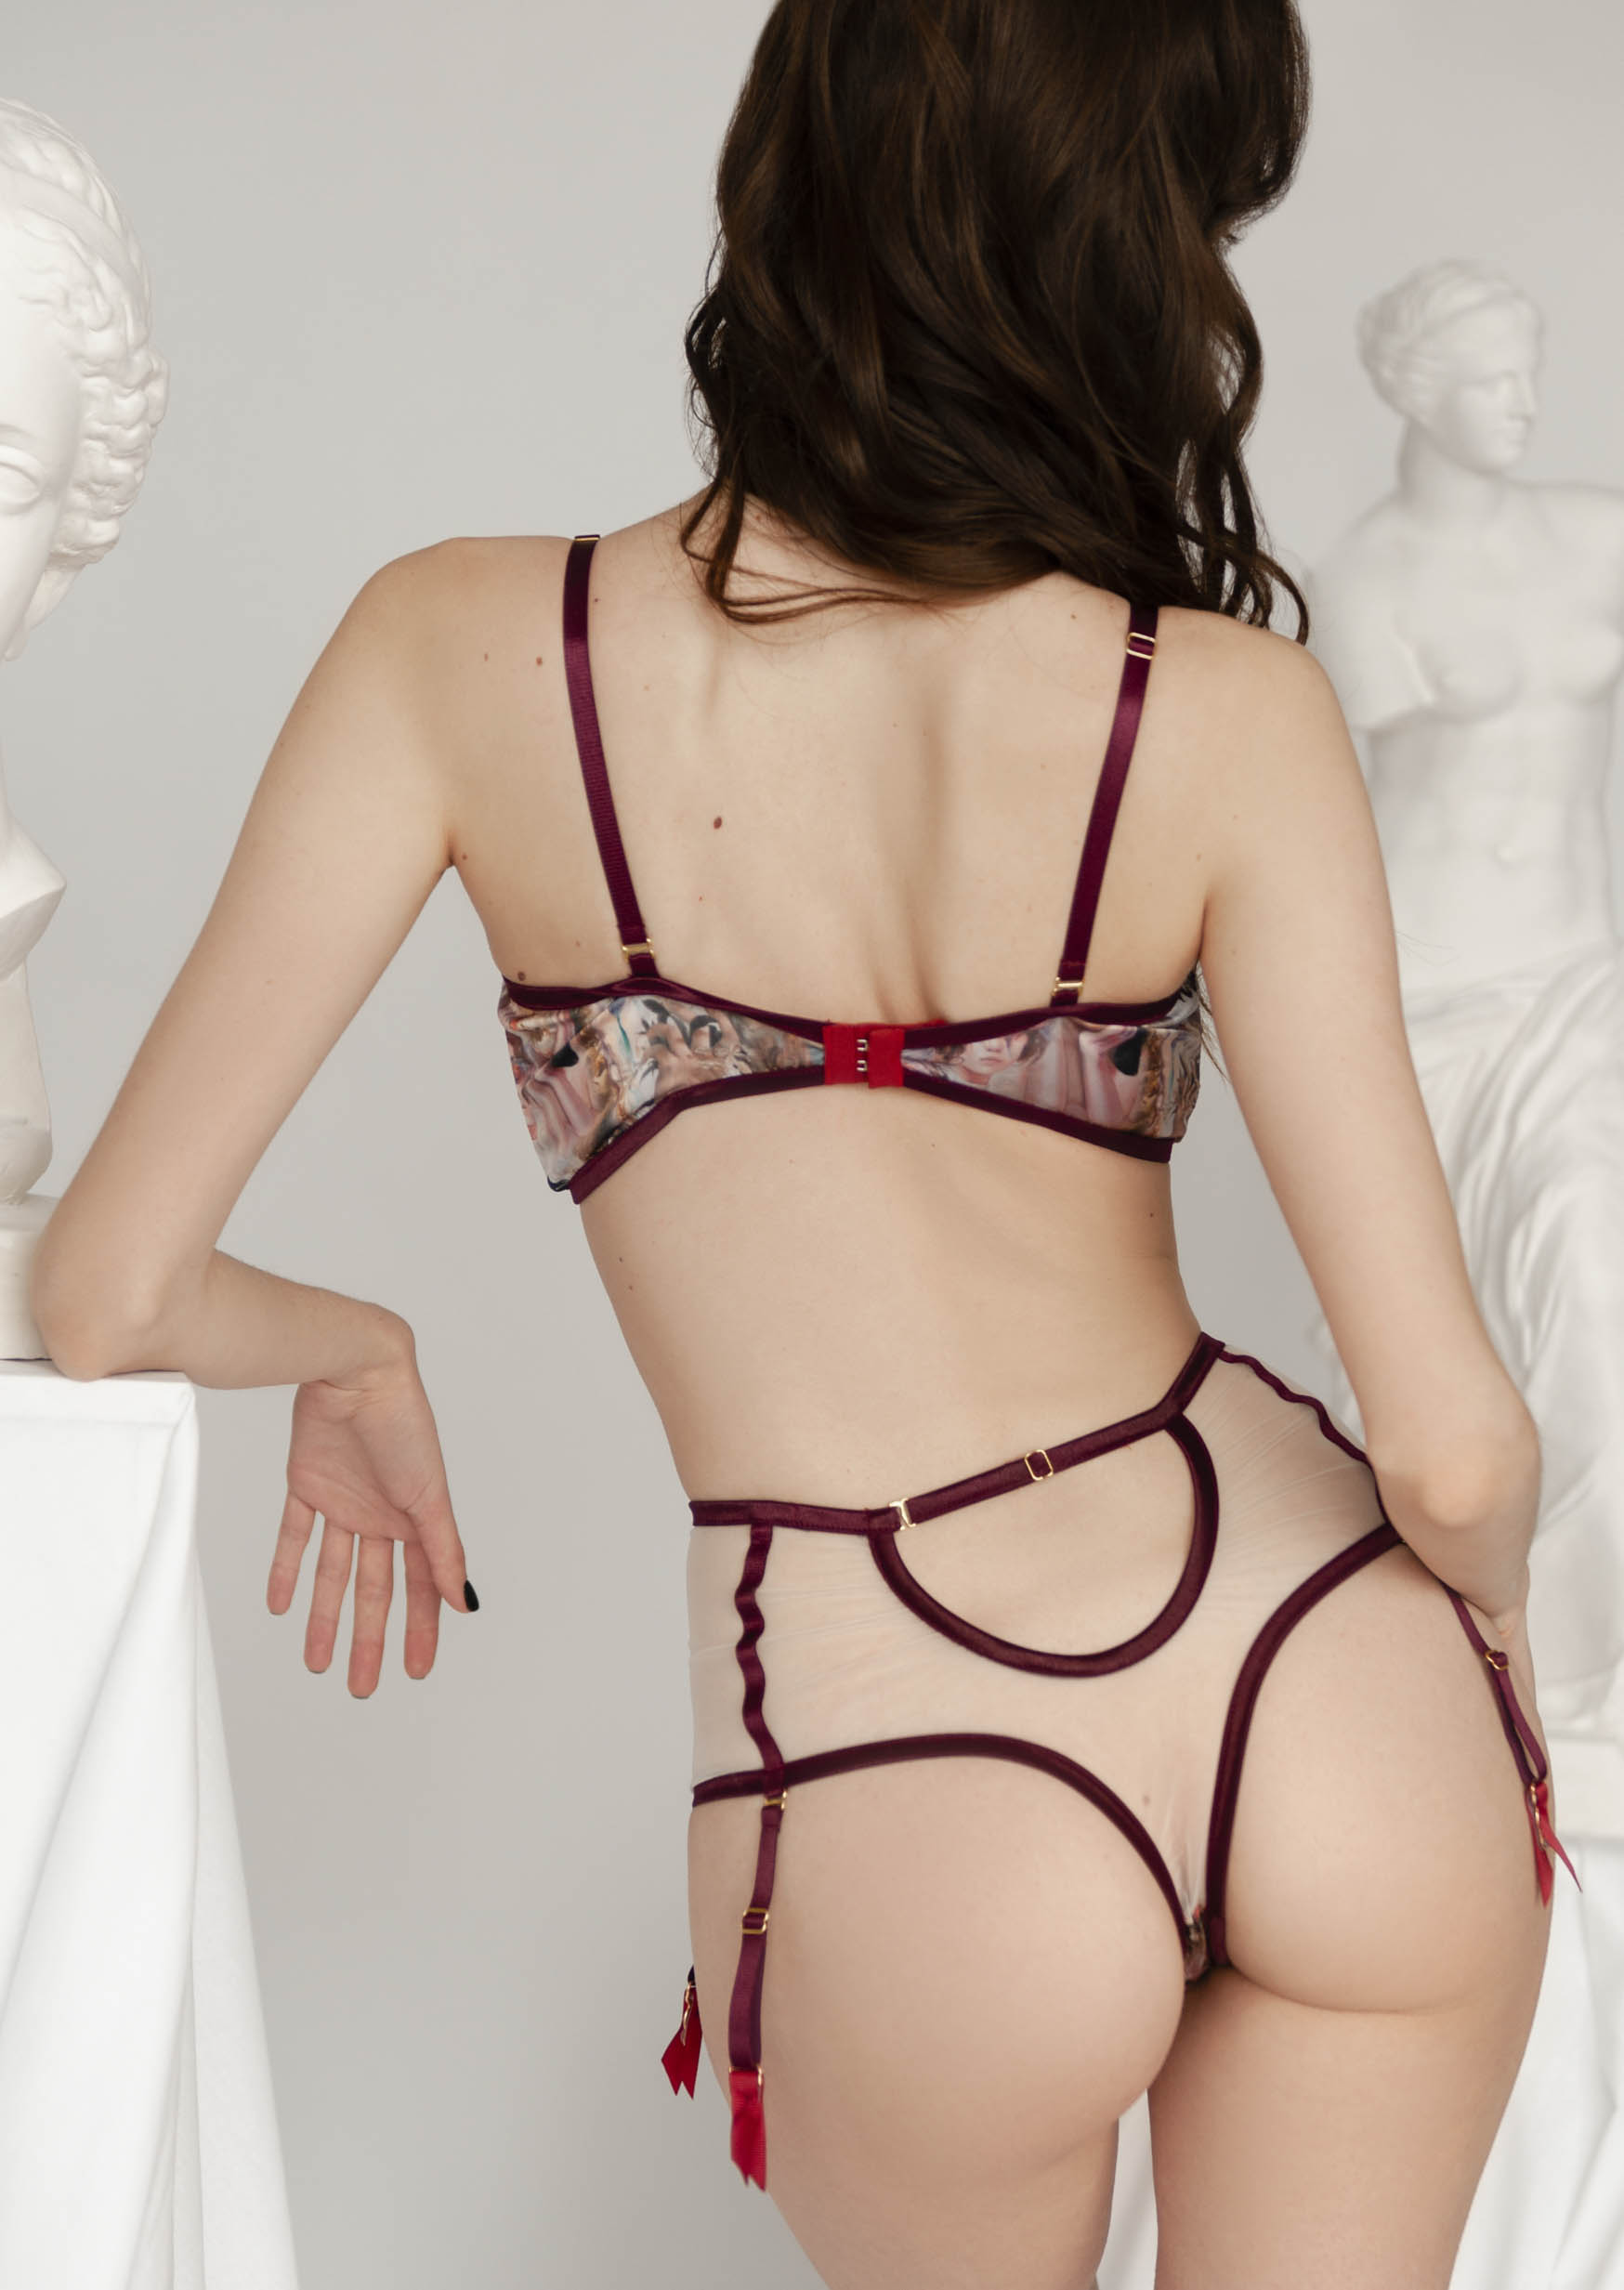 Art print silk lingerie with garter belt underwired bra with high-waisted thong